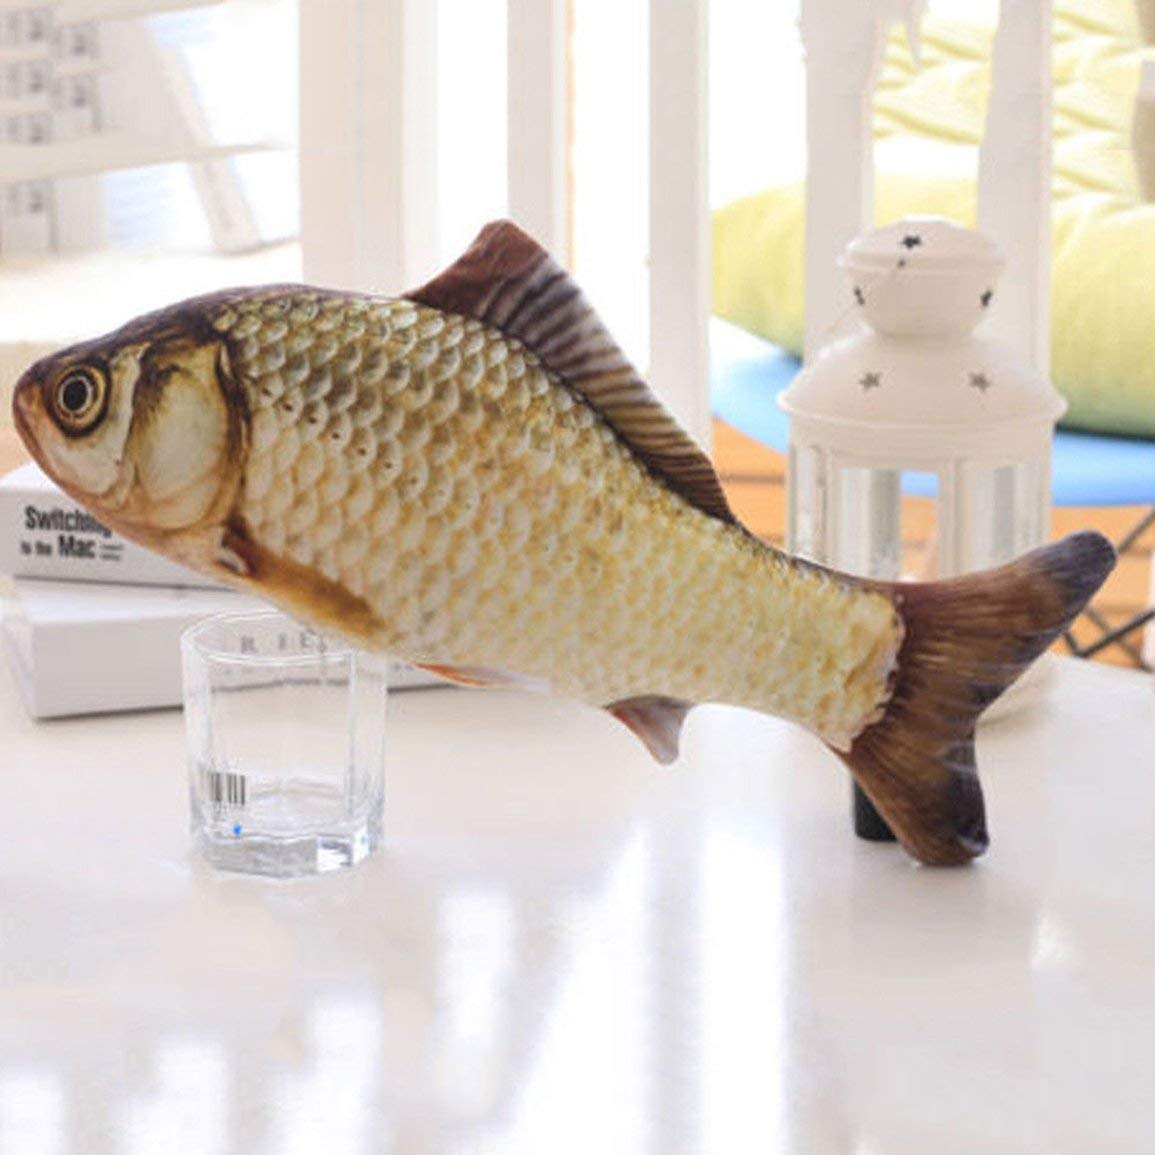 Pet Cat Play Crucian Fish Shape Mint Catnip Chewing Kids Gifts Scratch Toy Cat Favor Simulation Fish Pet Product Supplies